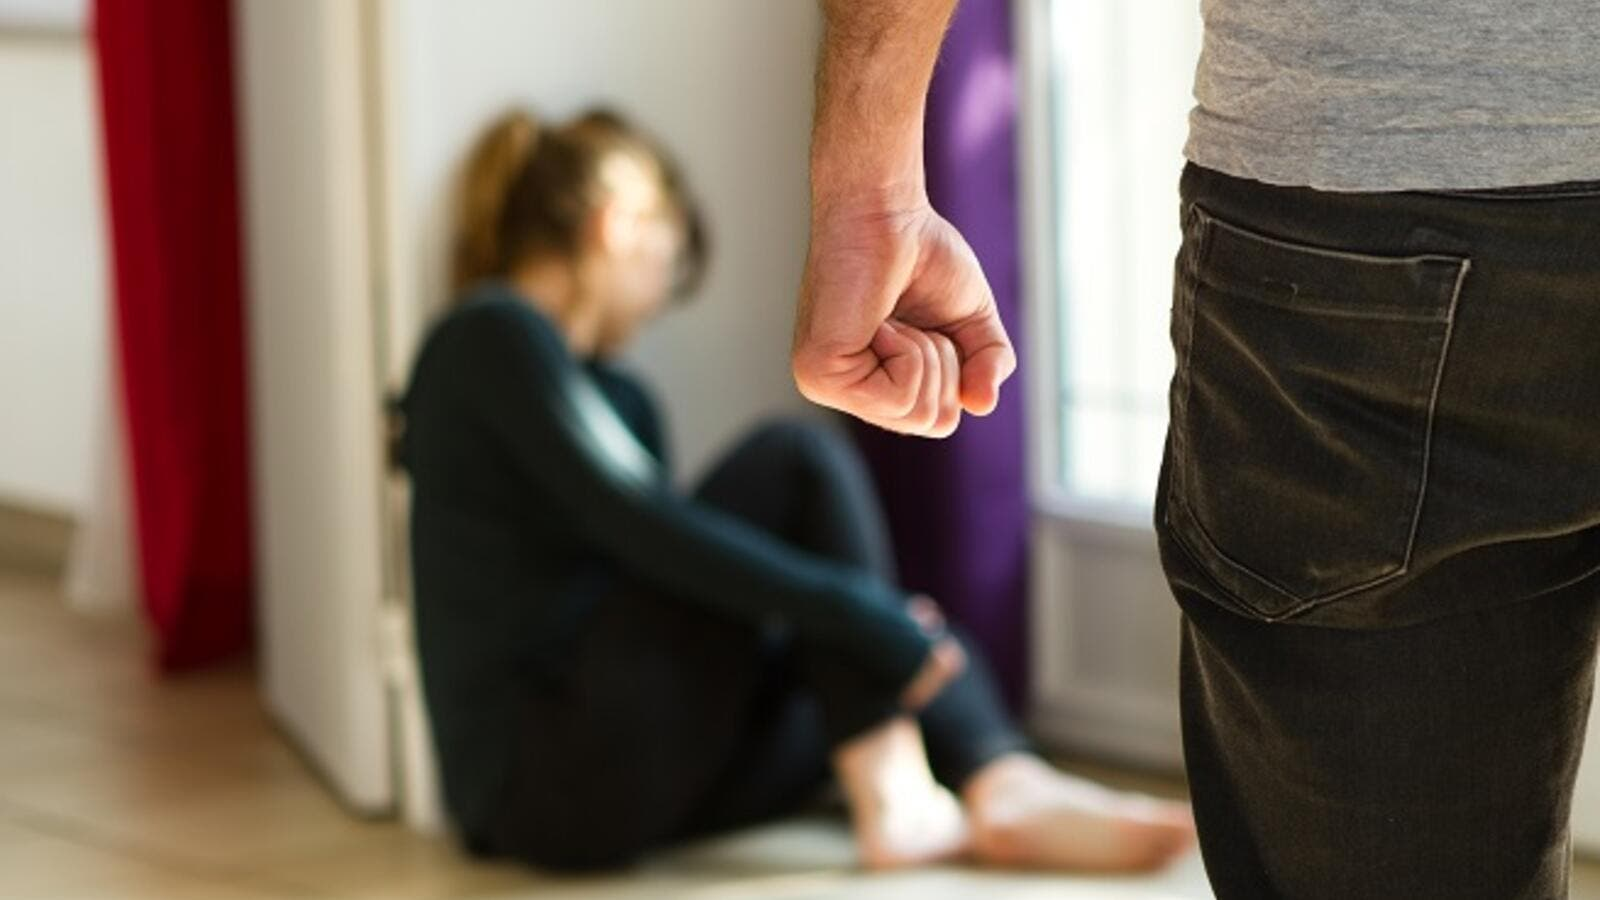 Among the various approaches to tackling domestic violence, very few are backed by empirical evidence of effectiveness. (Shutterstock)